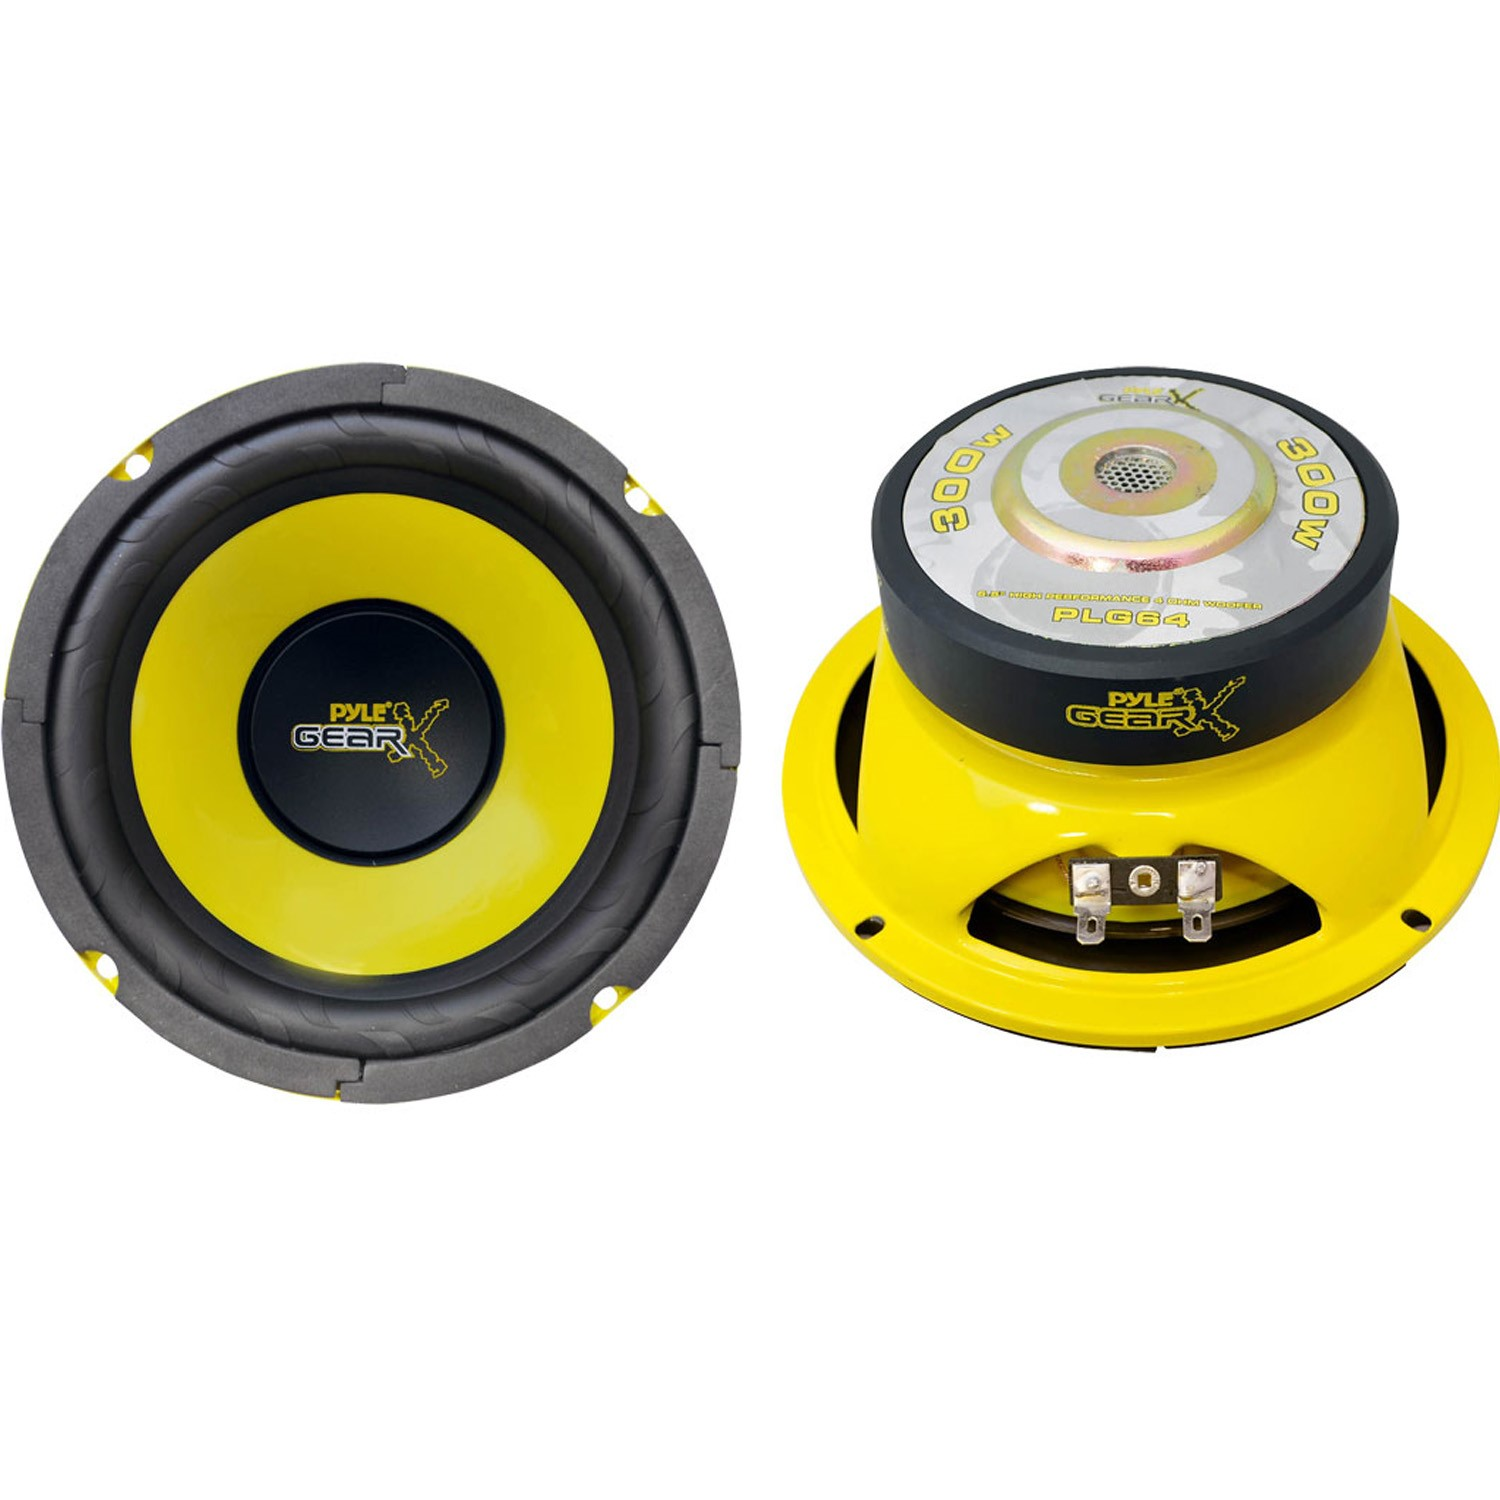 "Pyle - plg64 - 6.5"" 300 watt mid bass woofer"